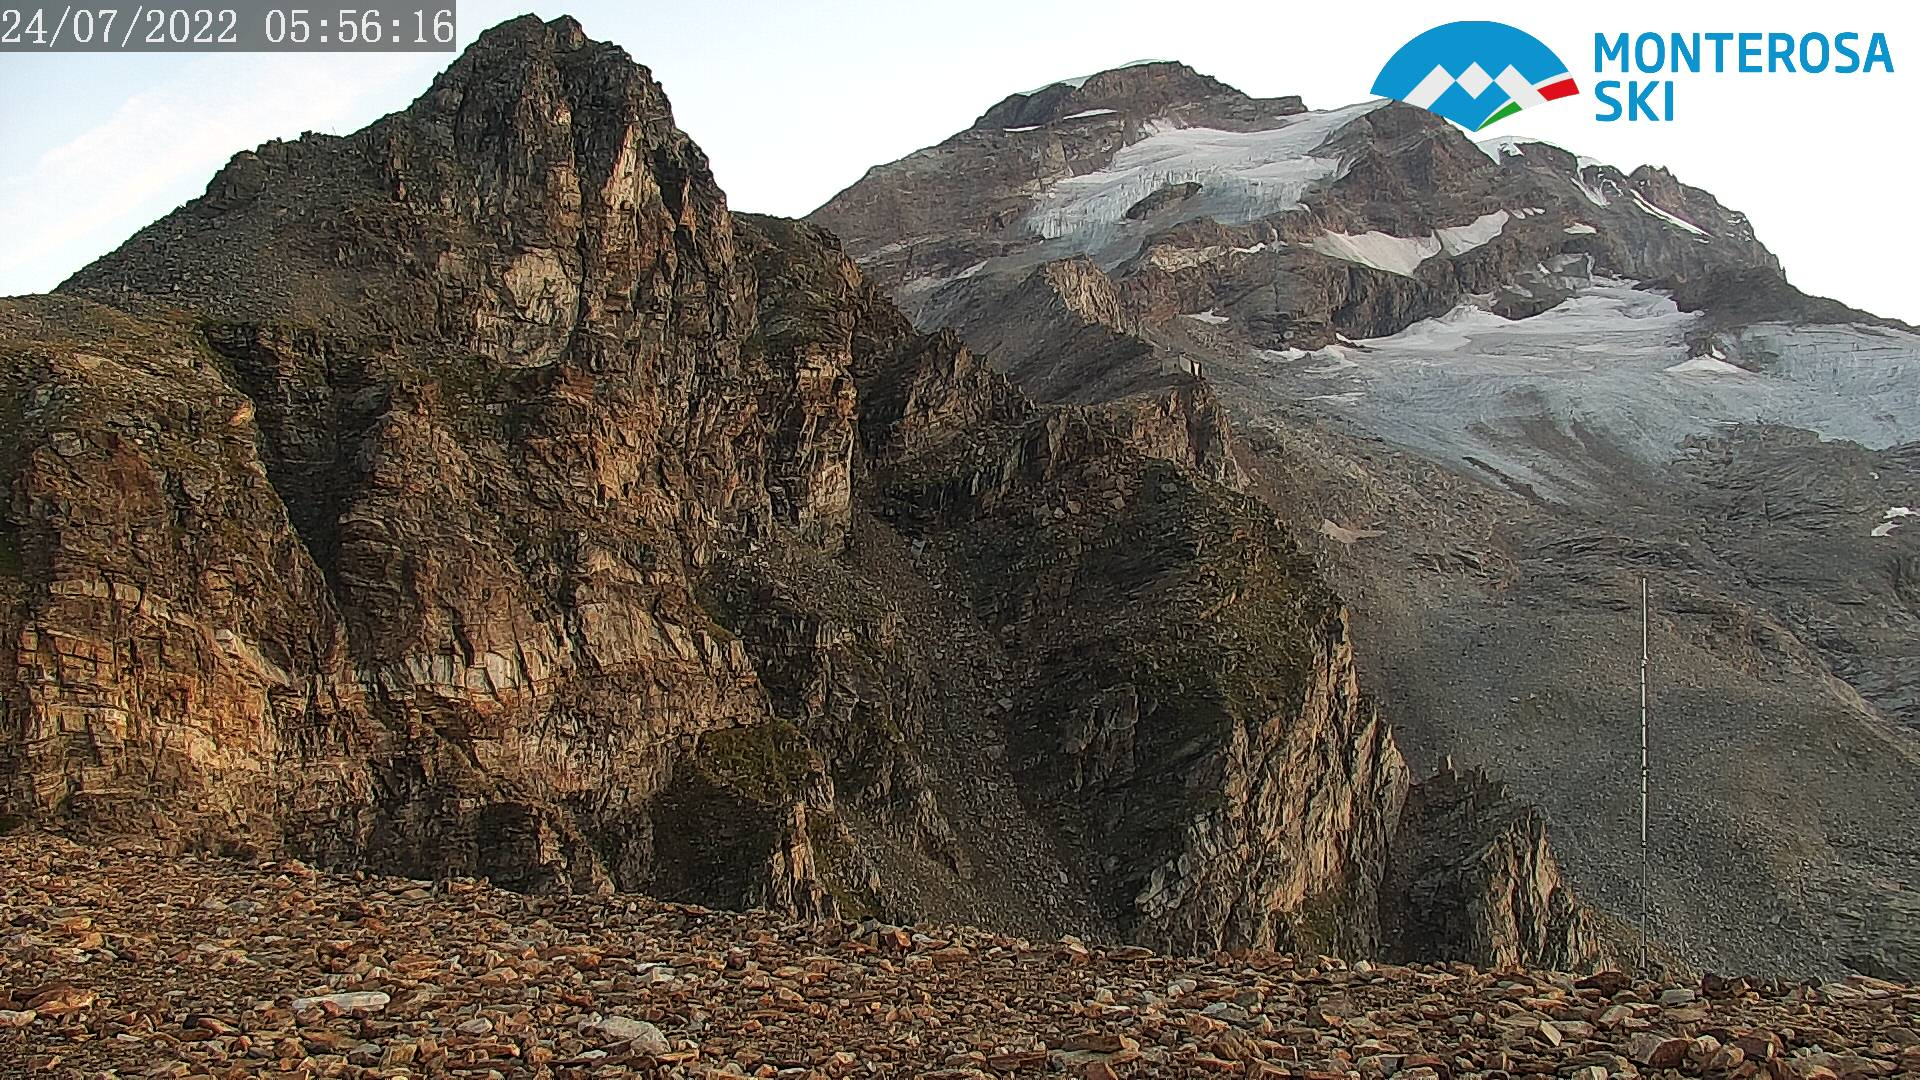 https://www.monterosa2000.it/webcam/3030/022/3030.jpg